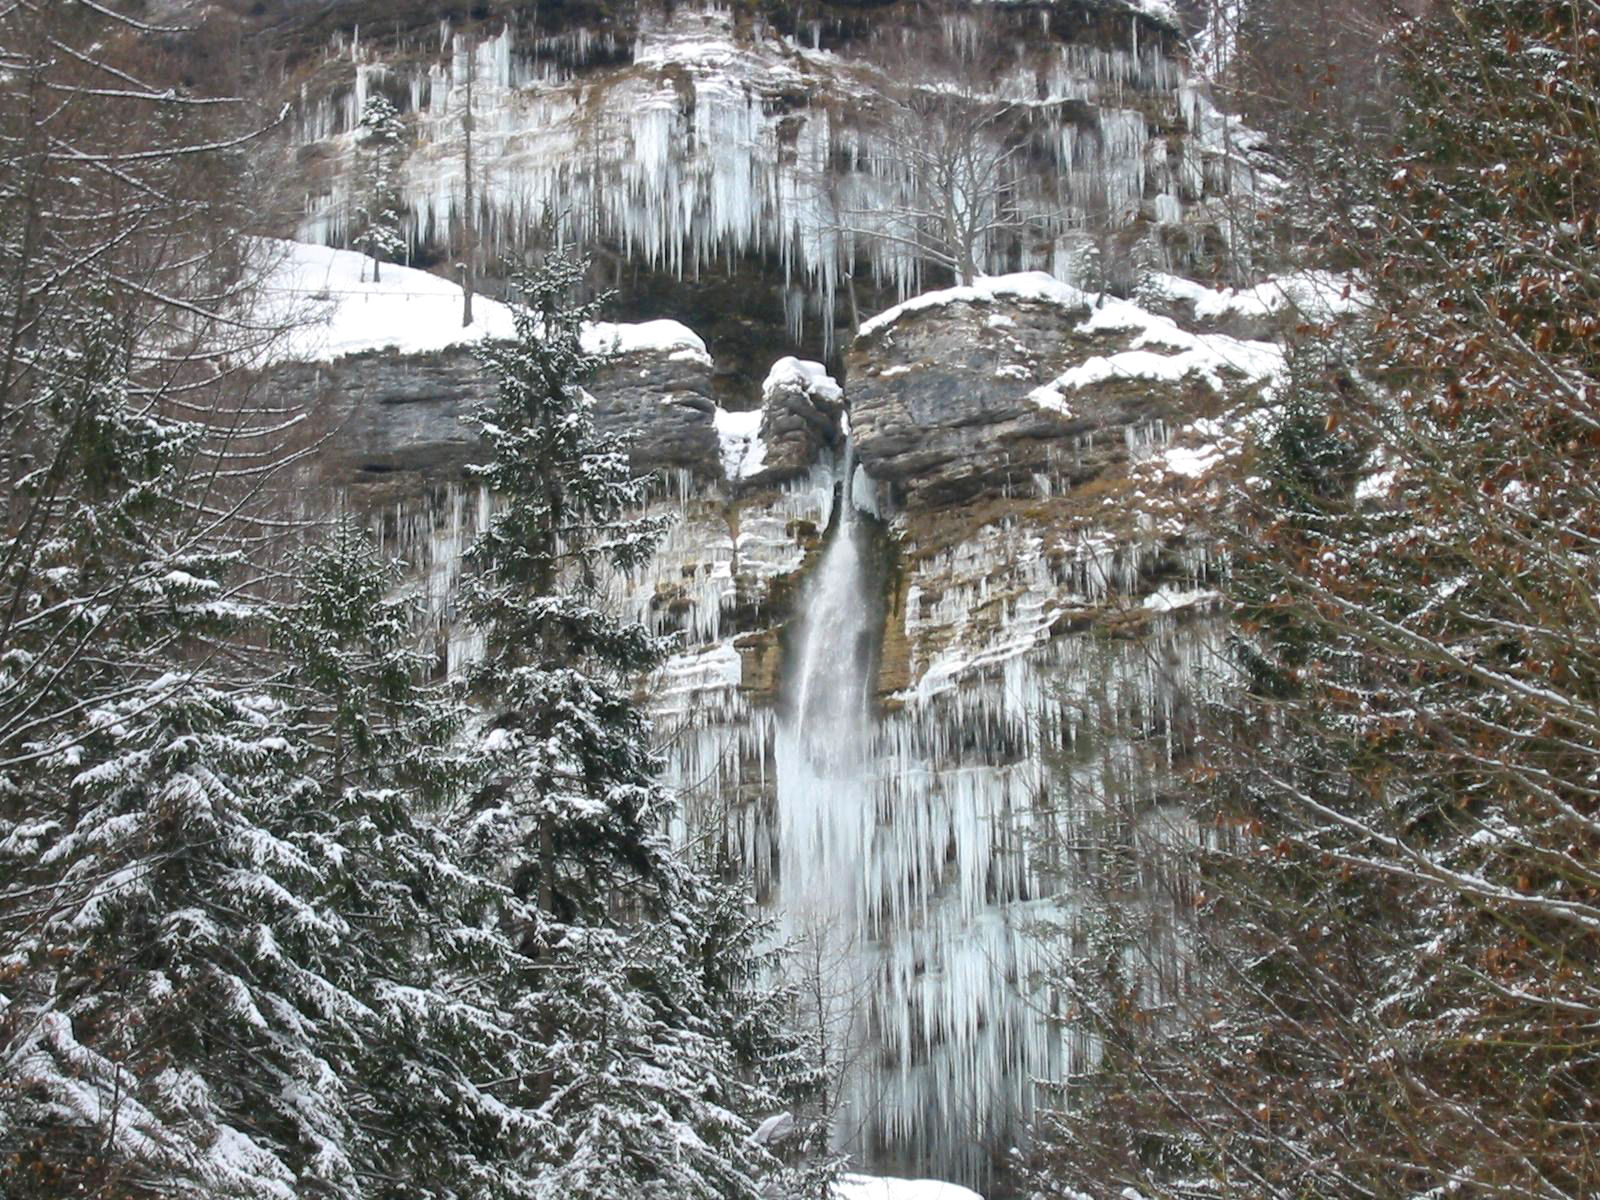 Pericnik waterfall from the distance in winter